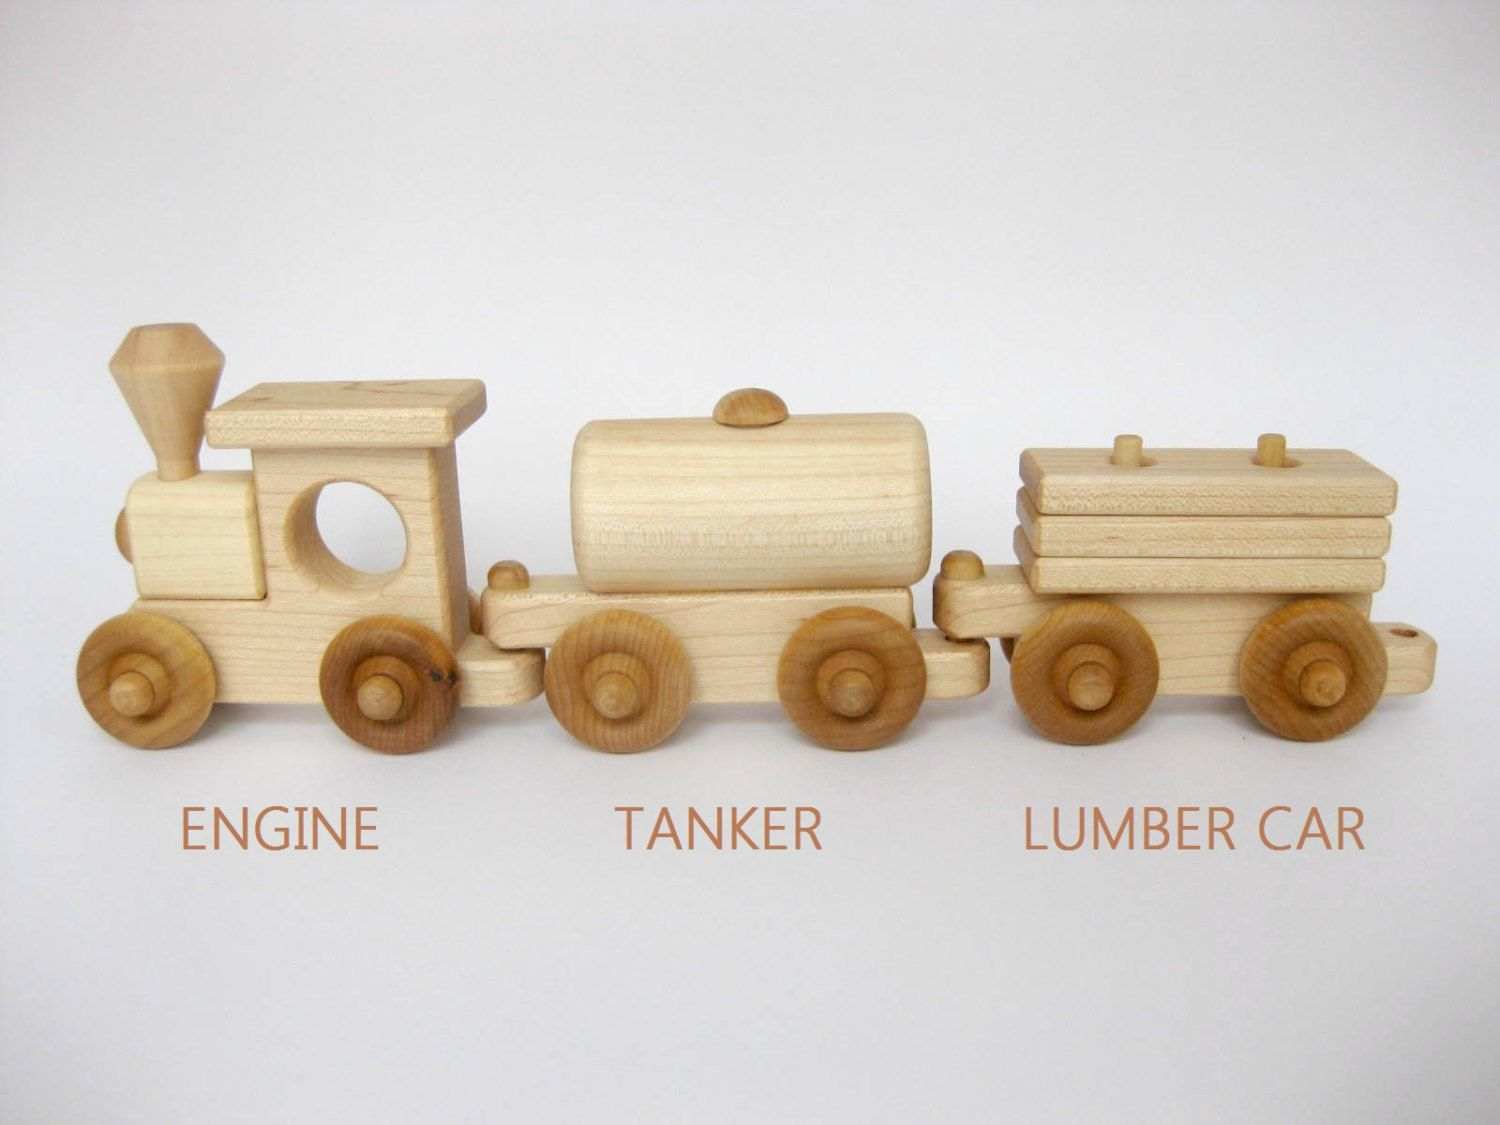 wooden toy train set 3 cars, natural wood toy | wooden toys